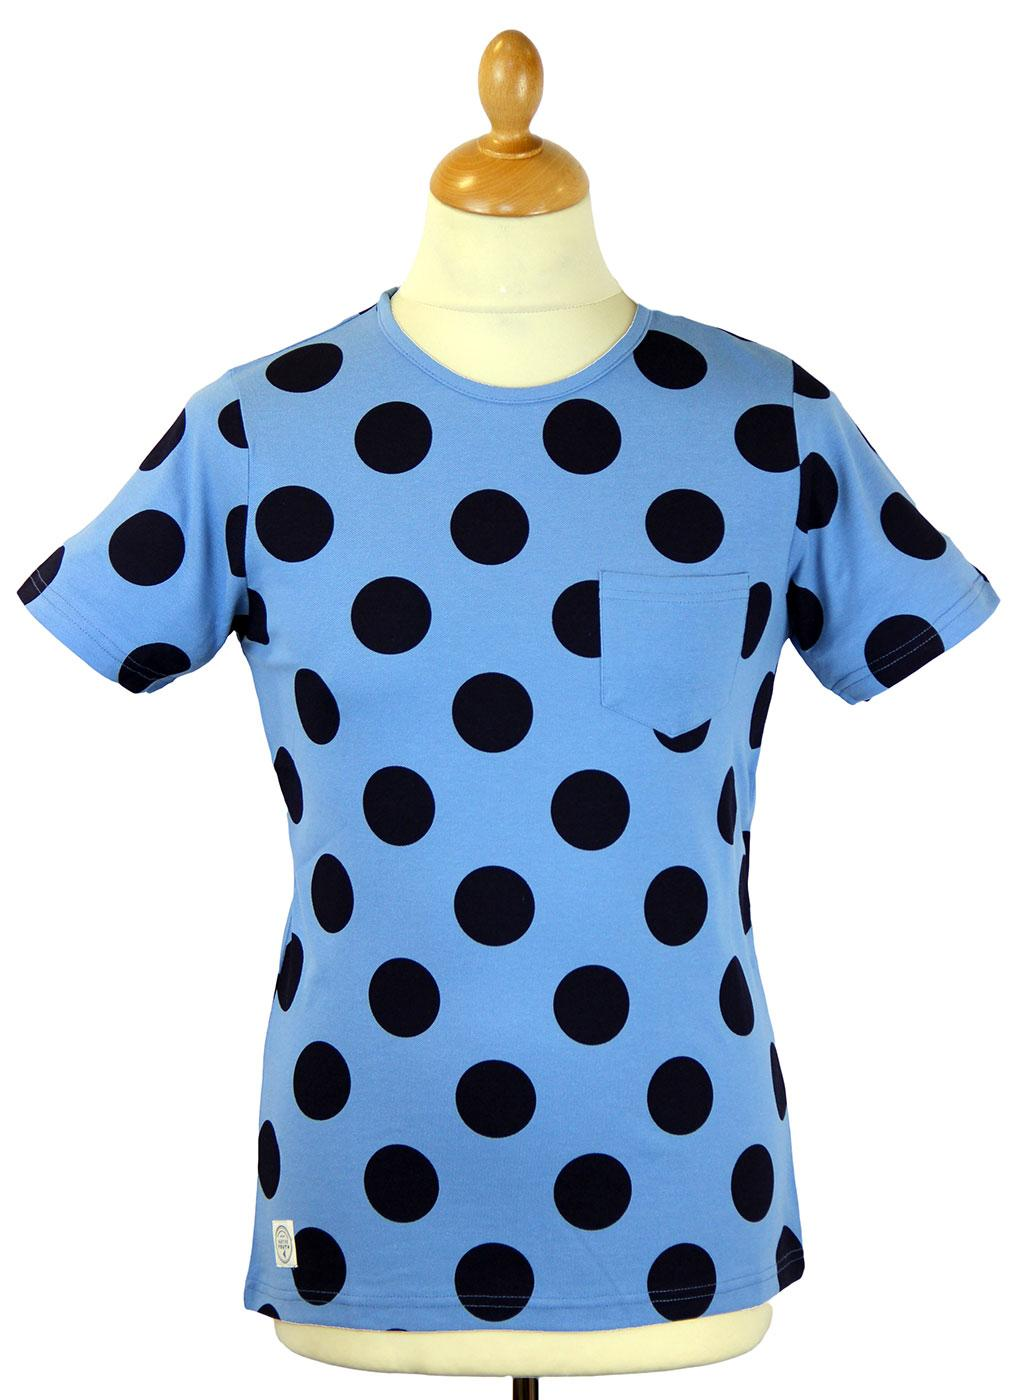 NATIVE YOUTH Oversize Polka Dot Retro Mod T-Shirt